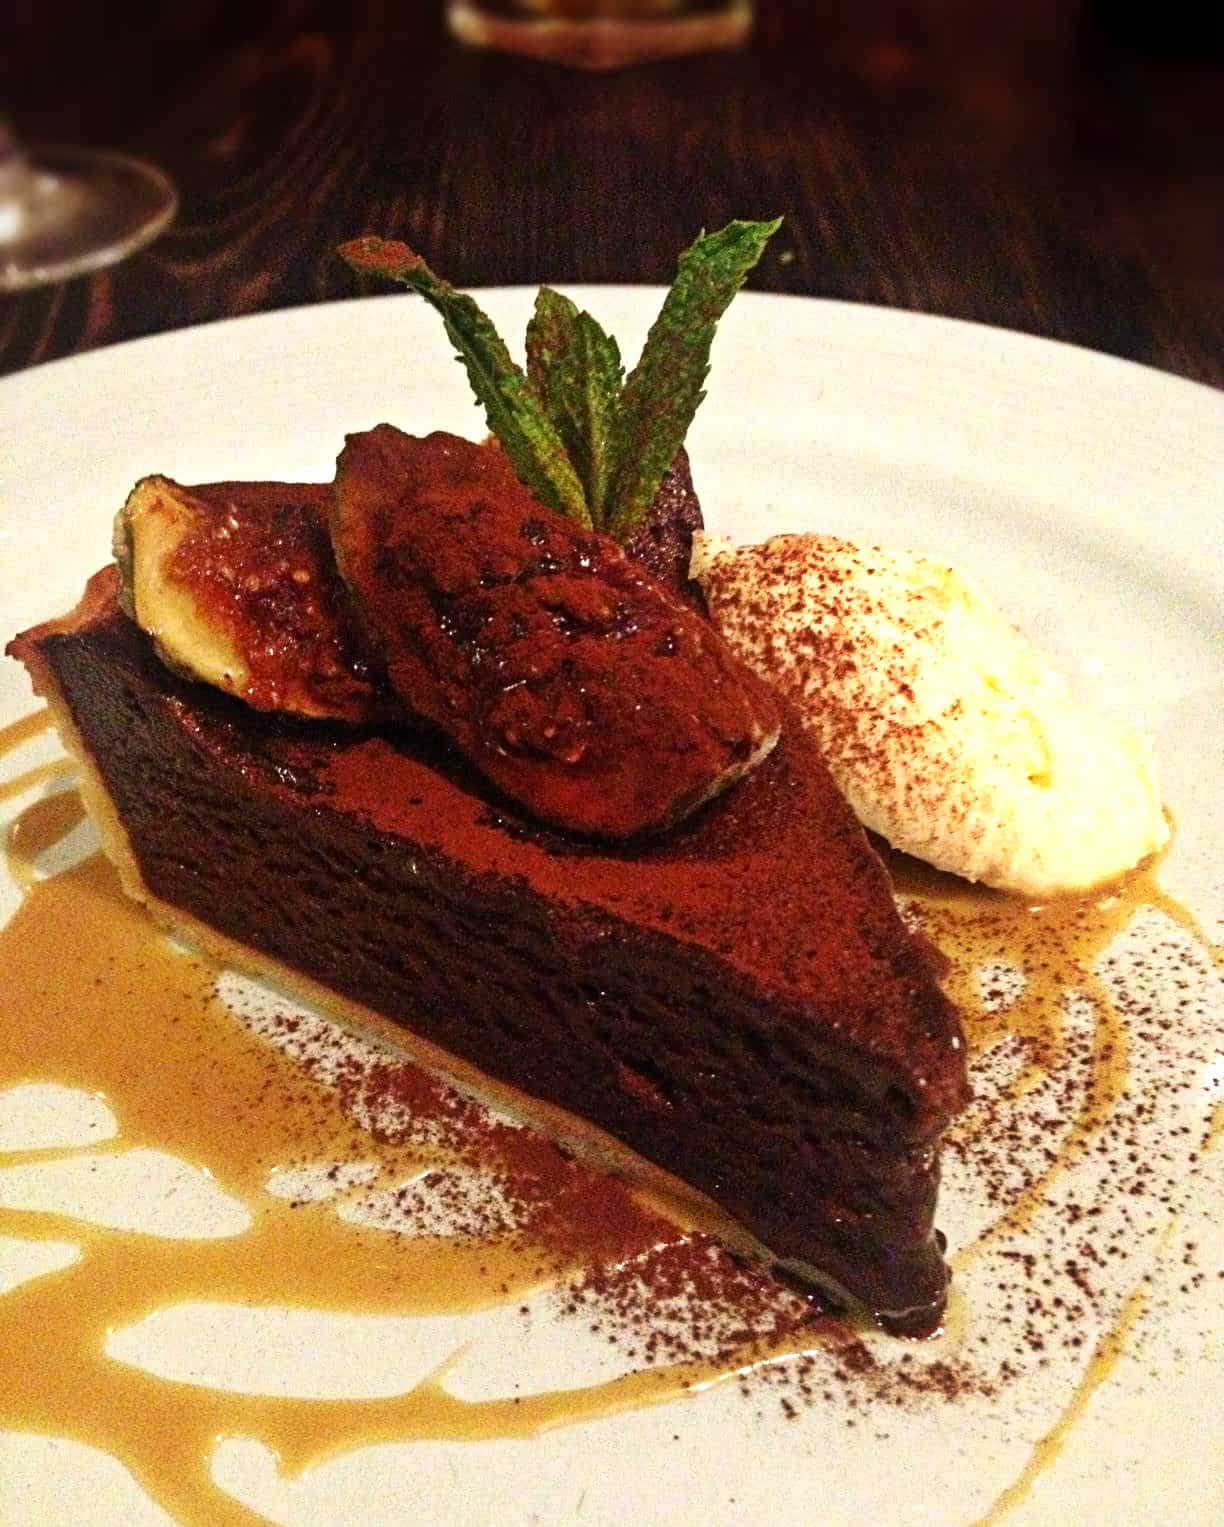 Chocolate espresso tart with figs. Couldn't get enough of those figs ...